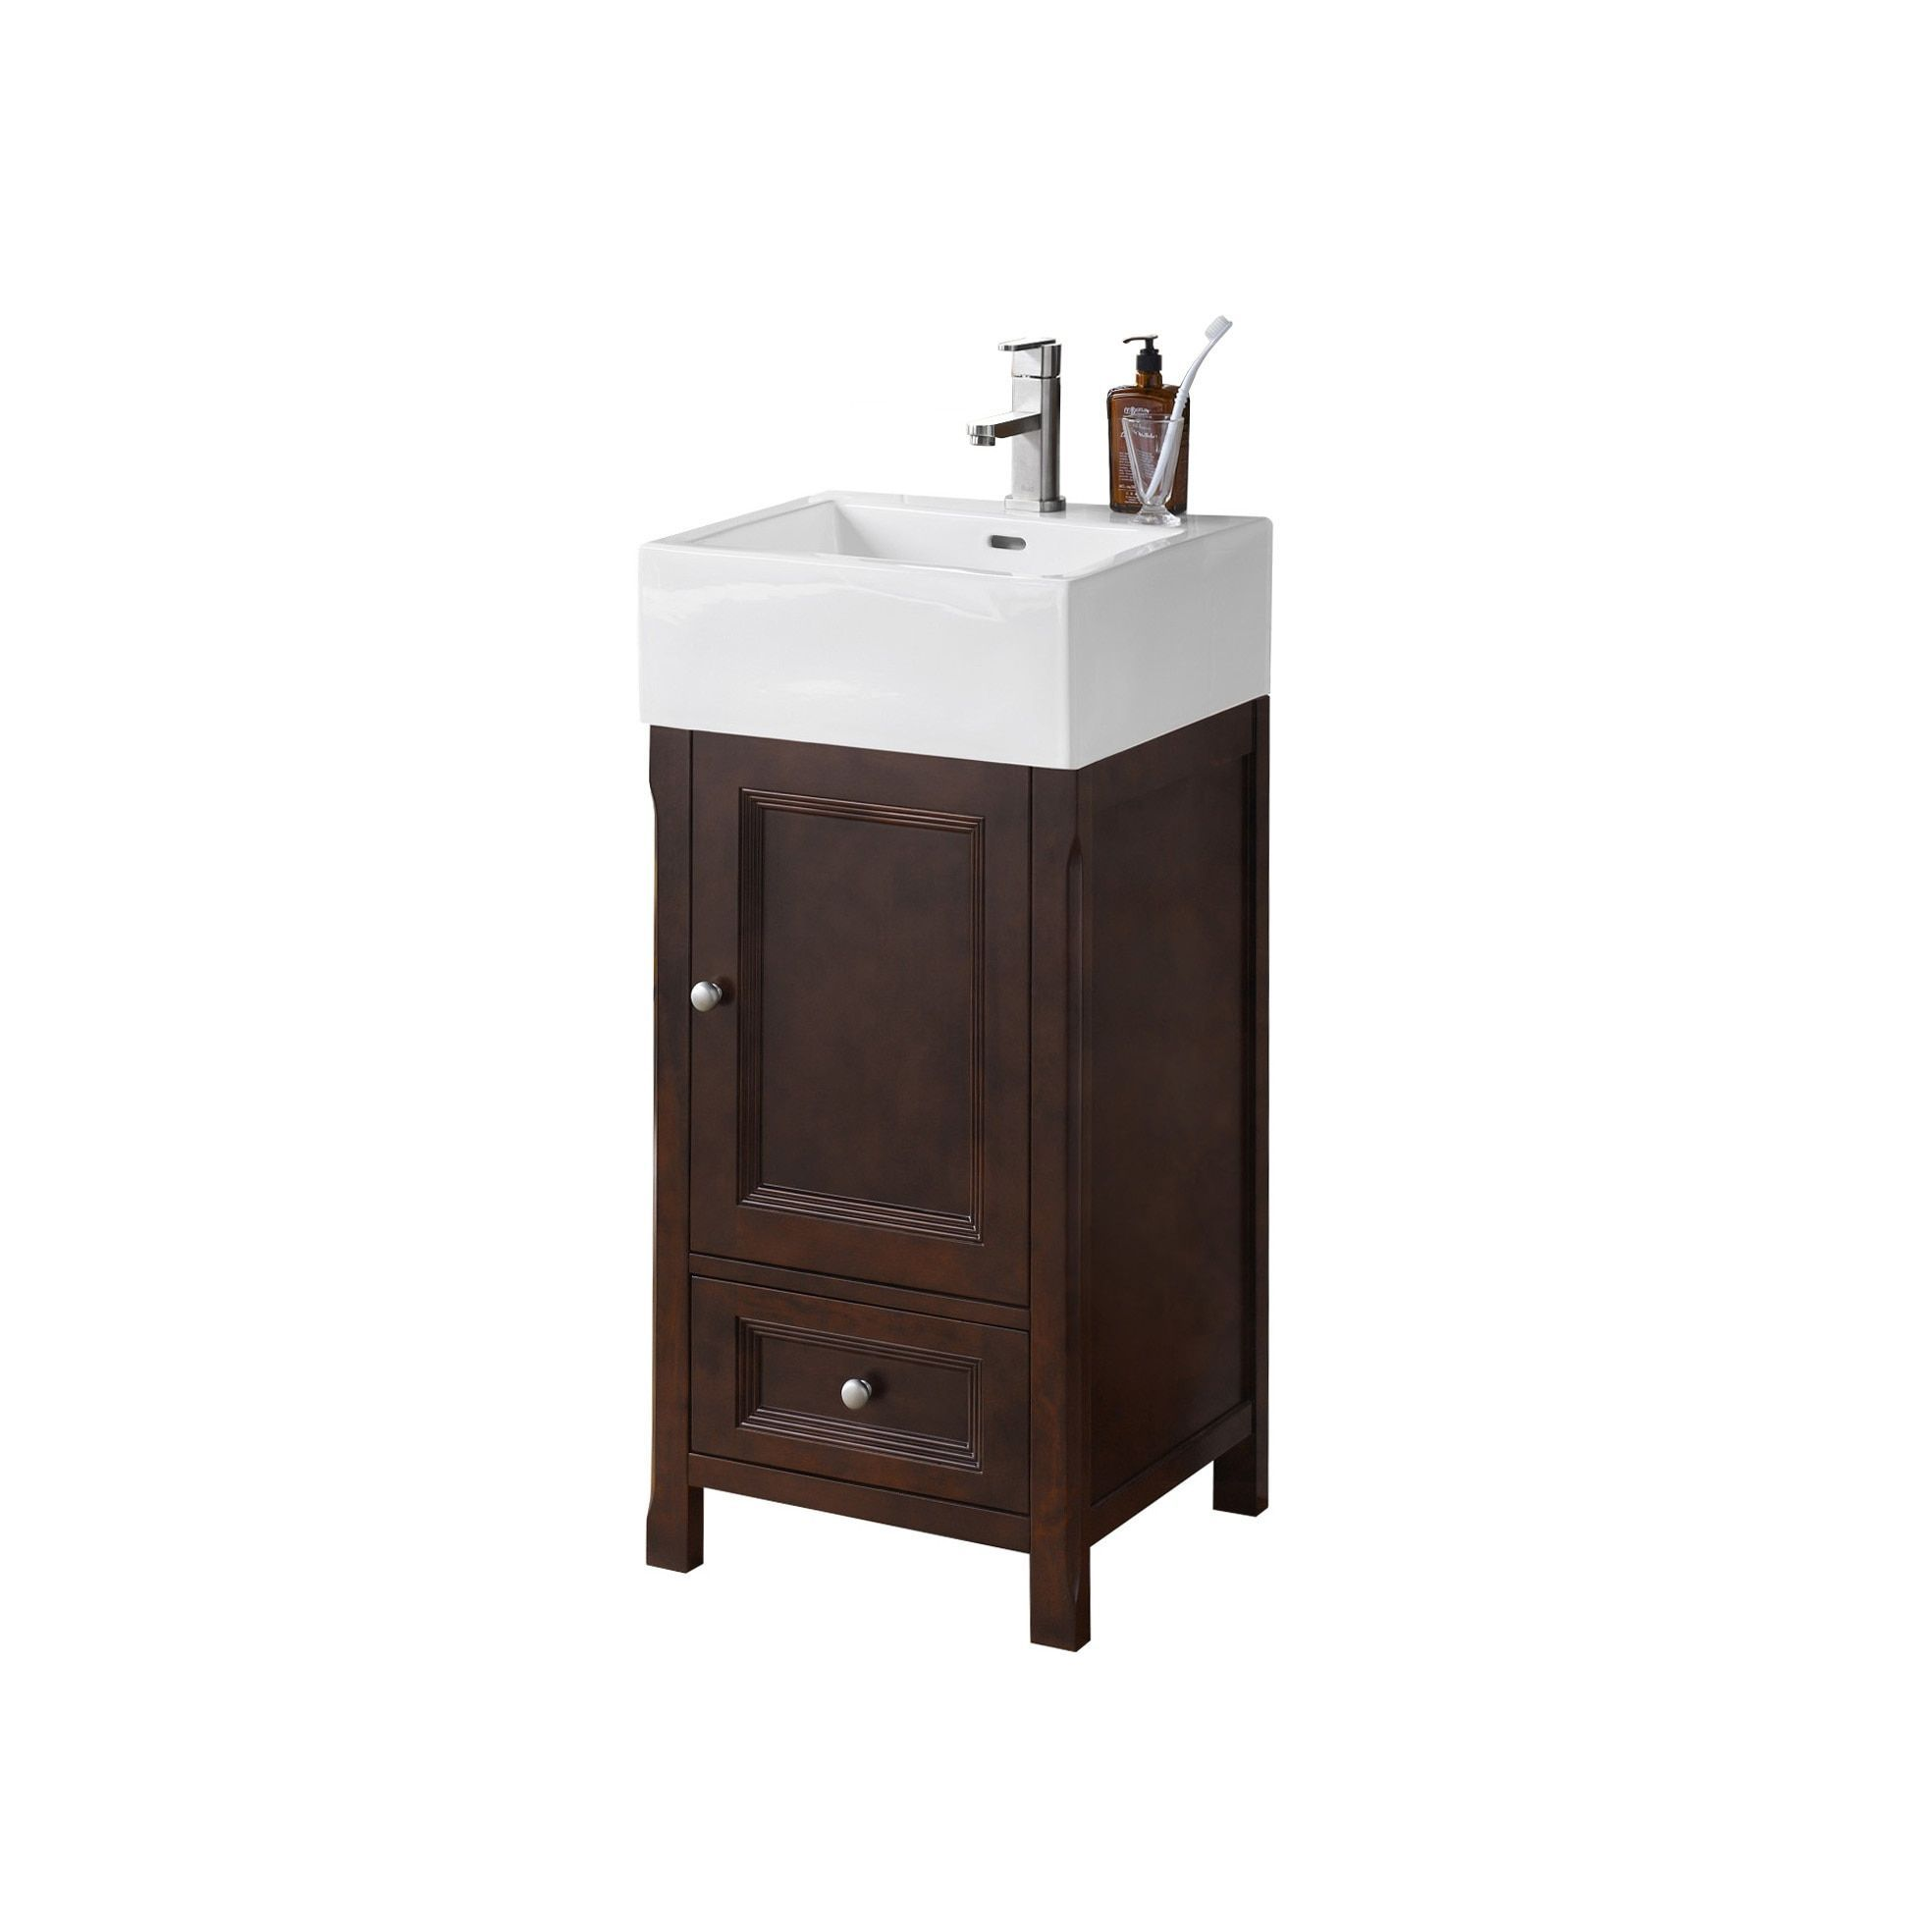 awesome wooden design collection savers space small frame area vanity stool ideas with of black seating for bathroom painting bathrooms inch